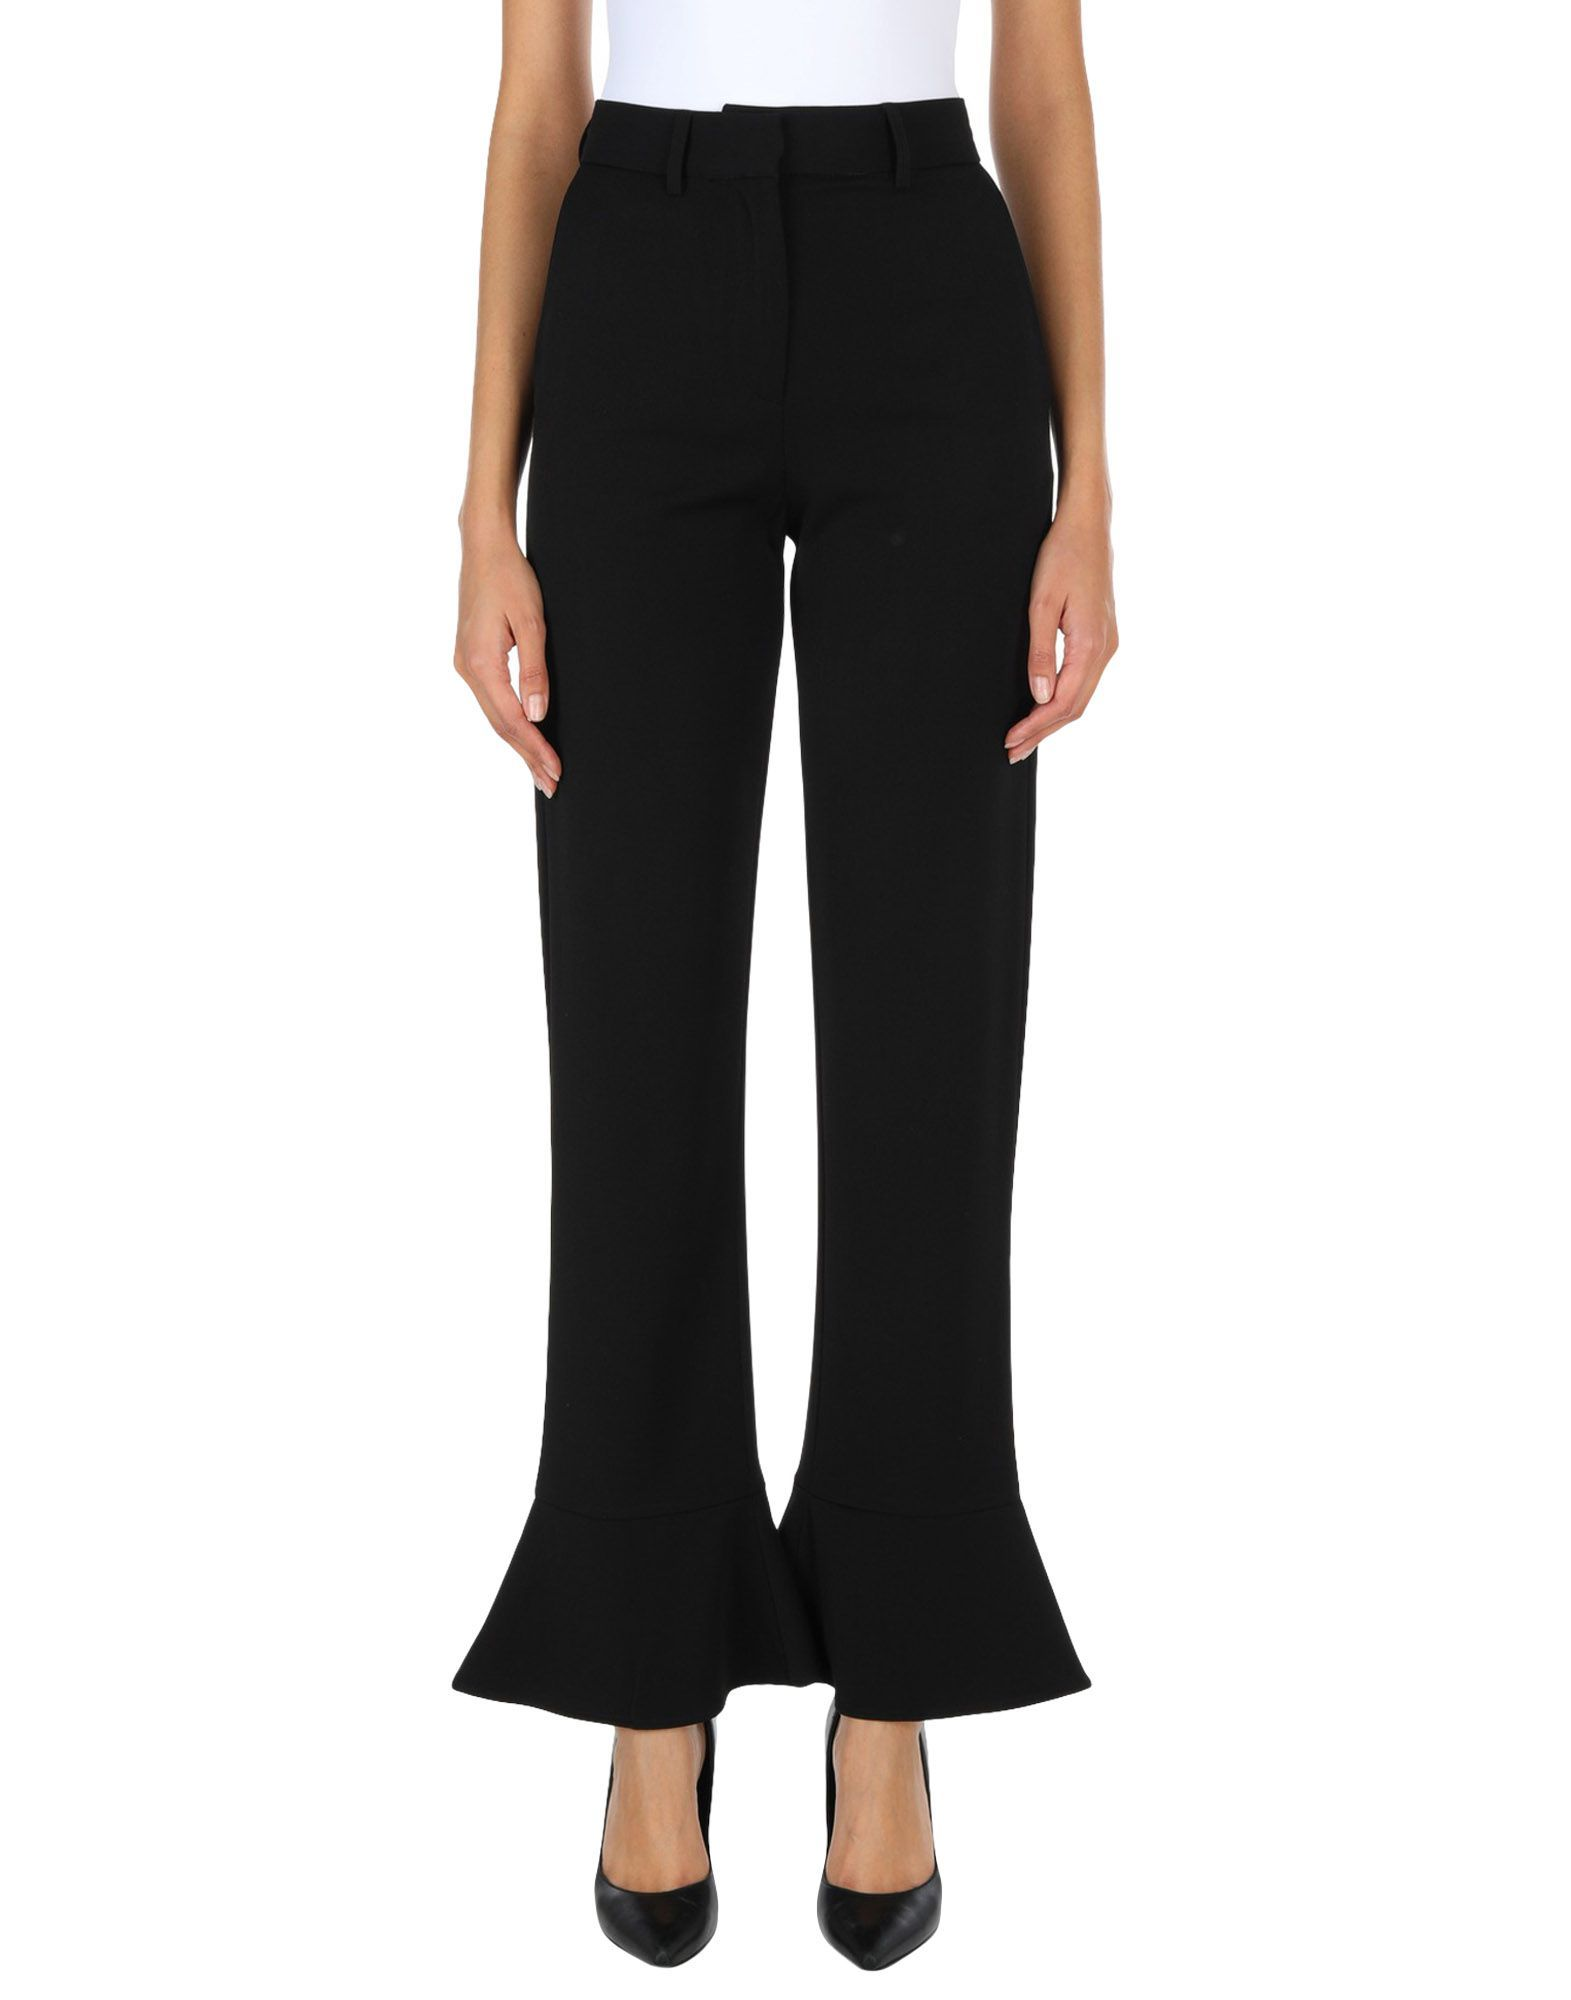 French Connection Black Kick Flare Trousers